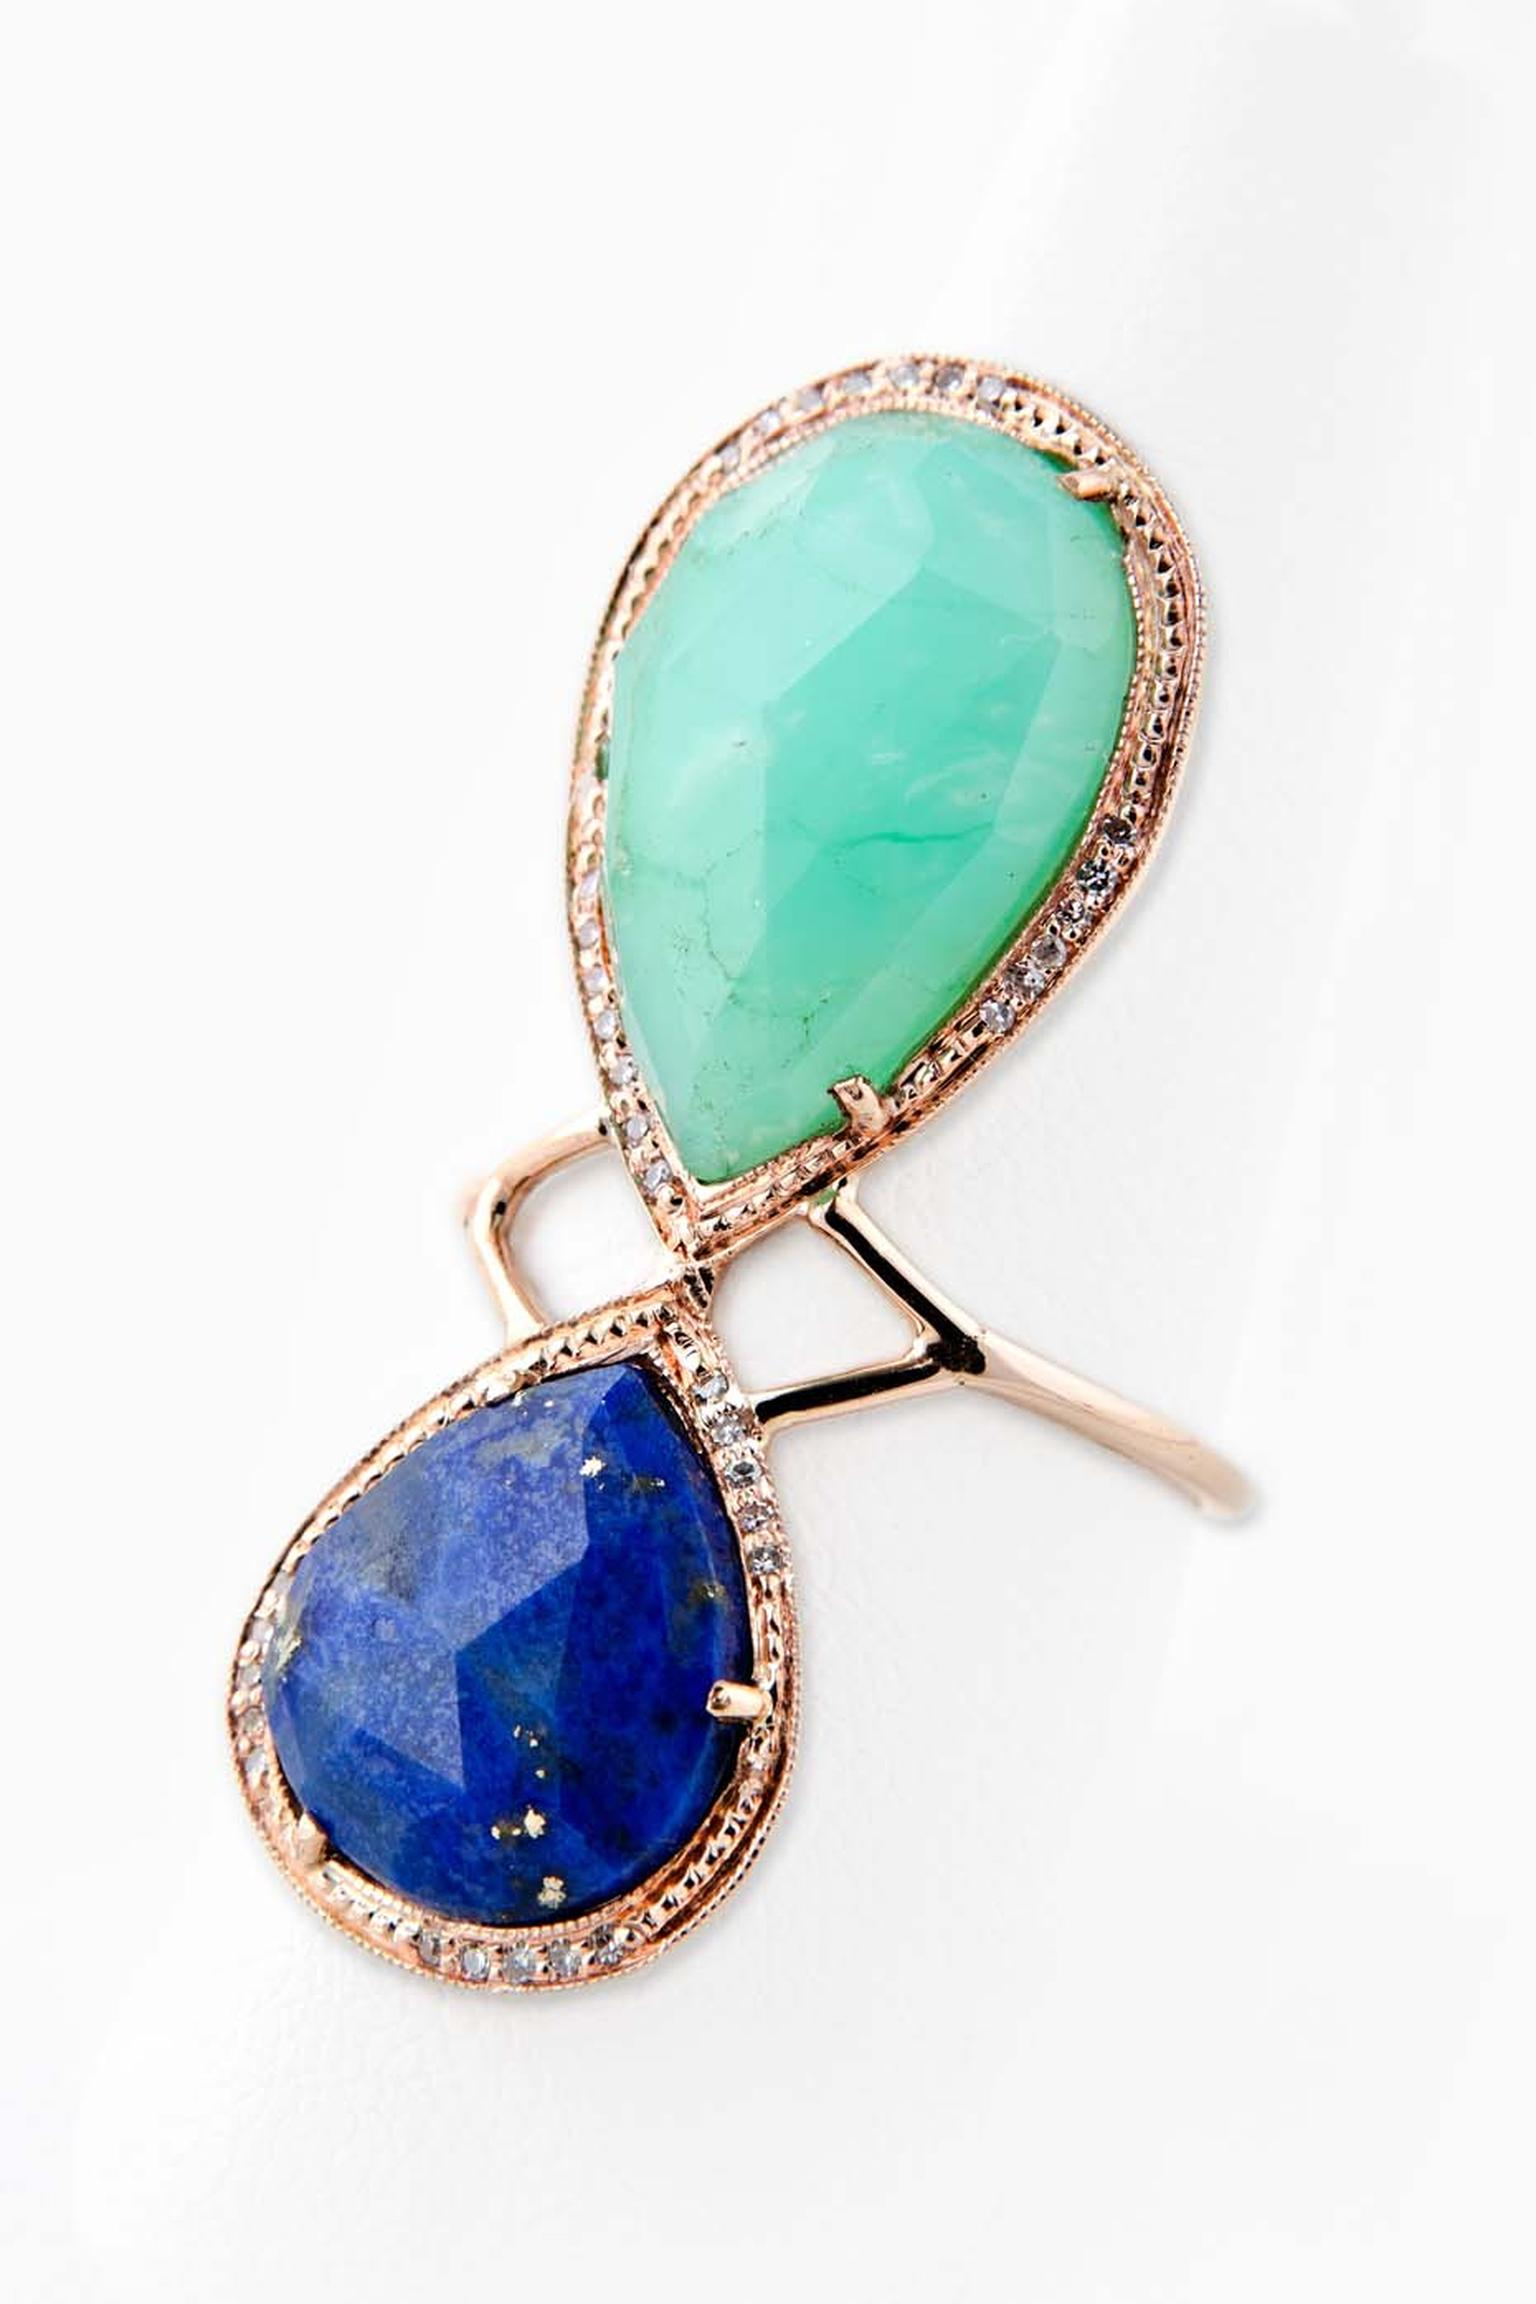 Jacquie Aiche Teardrop ring with pavé diamondsm chrysoprase and lapis lazuli.